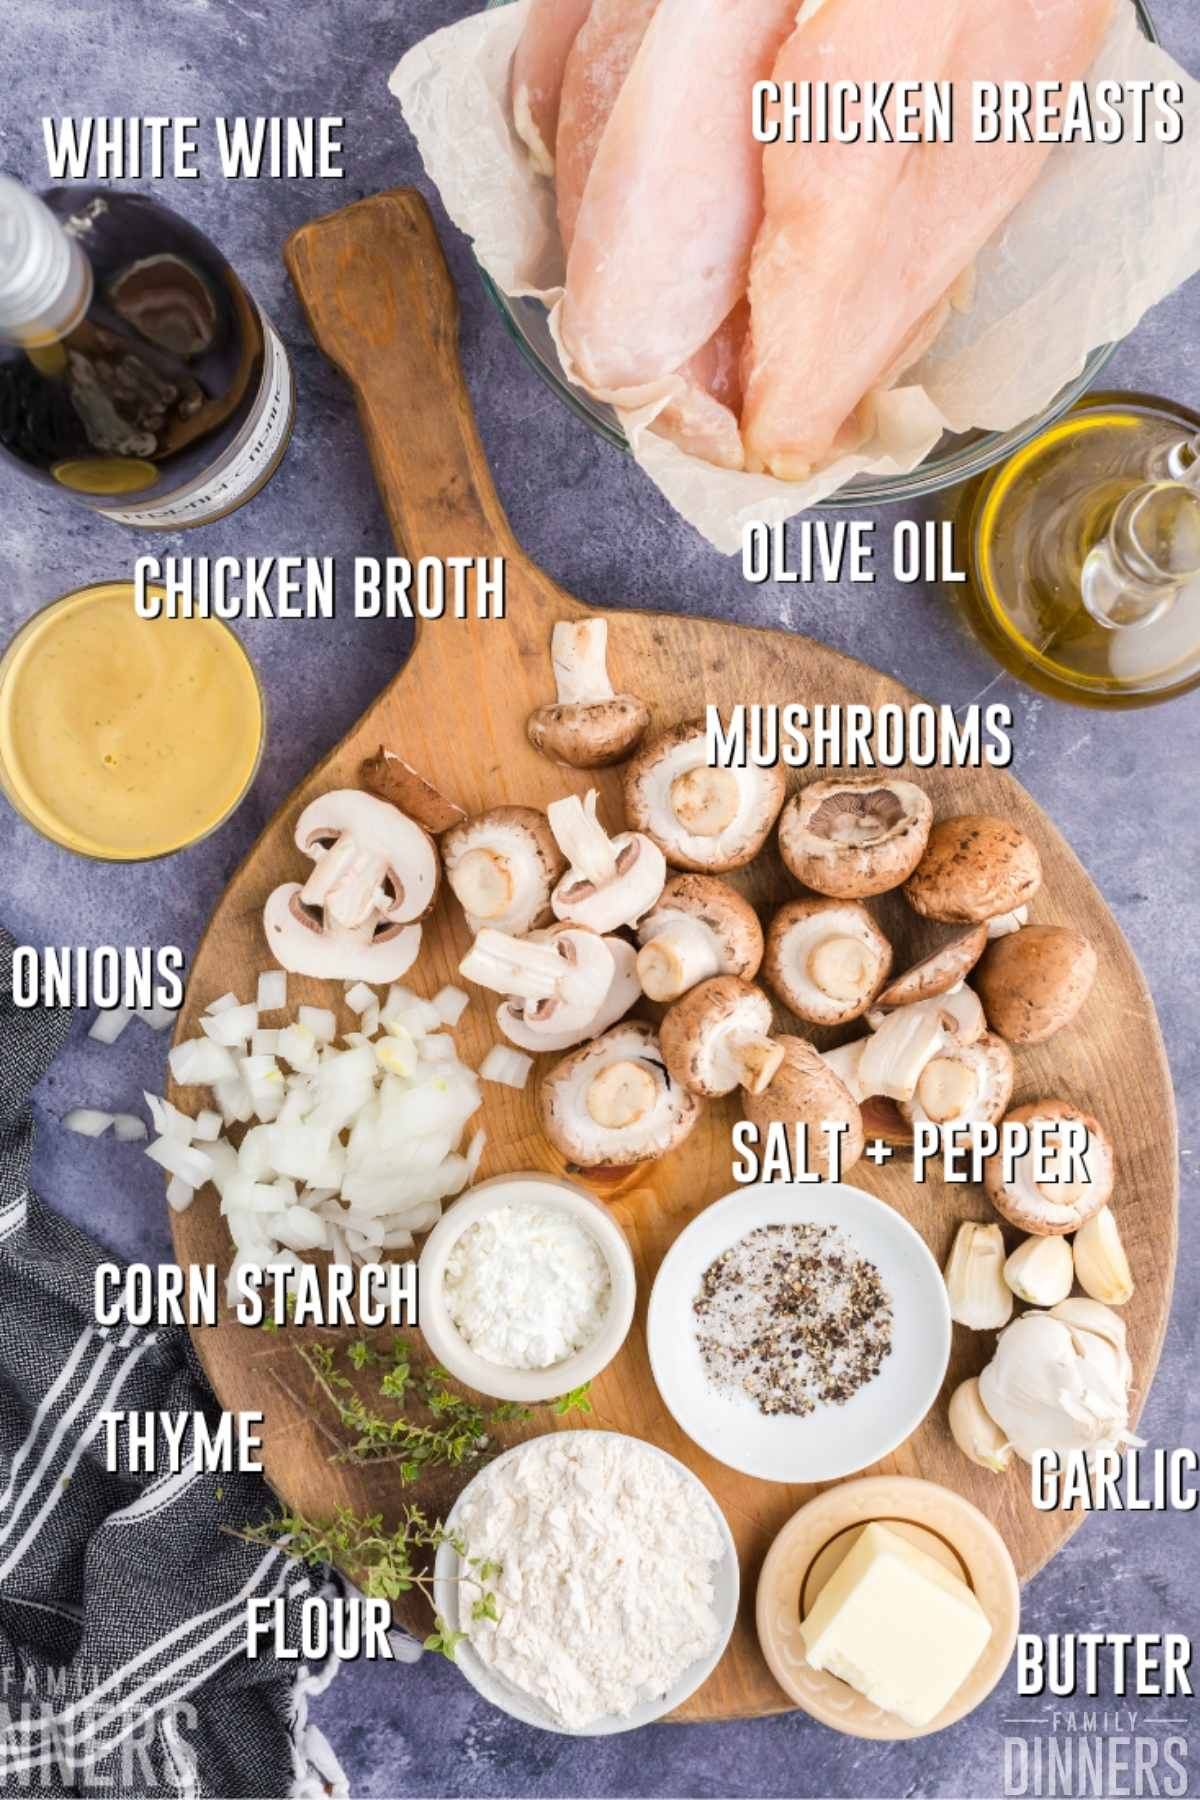 ingredients laid out on round cutting board: mushrooms, cut white onions, corn starch in small bowl, flour in small bowl, spices in small bowl, stick of butter, chicken broth in a bowl, white wine, olive oil and a bowl of raw chicken breasts